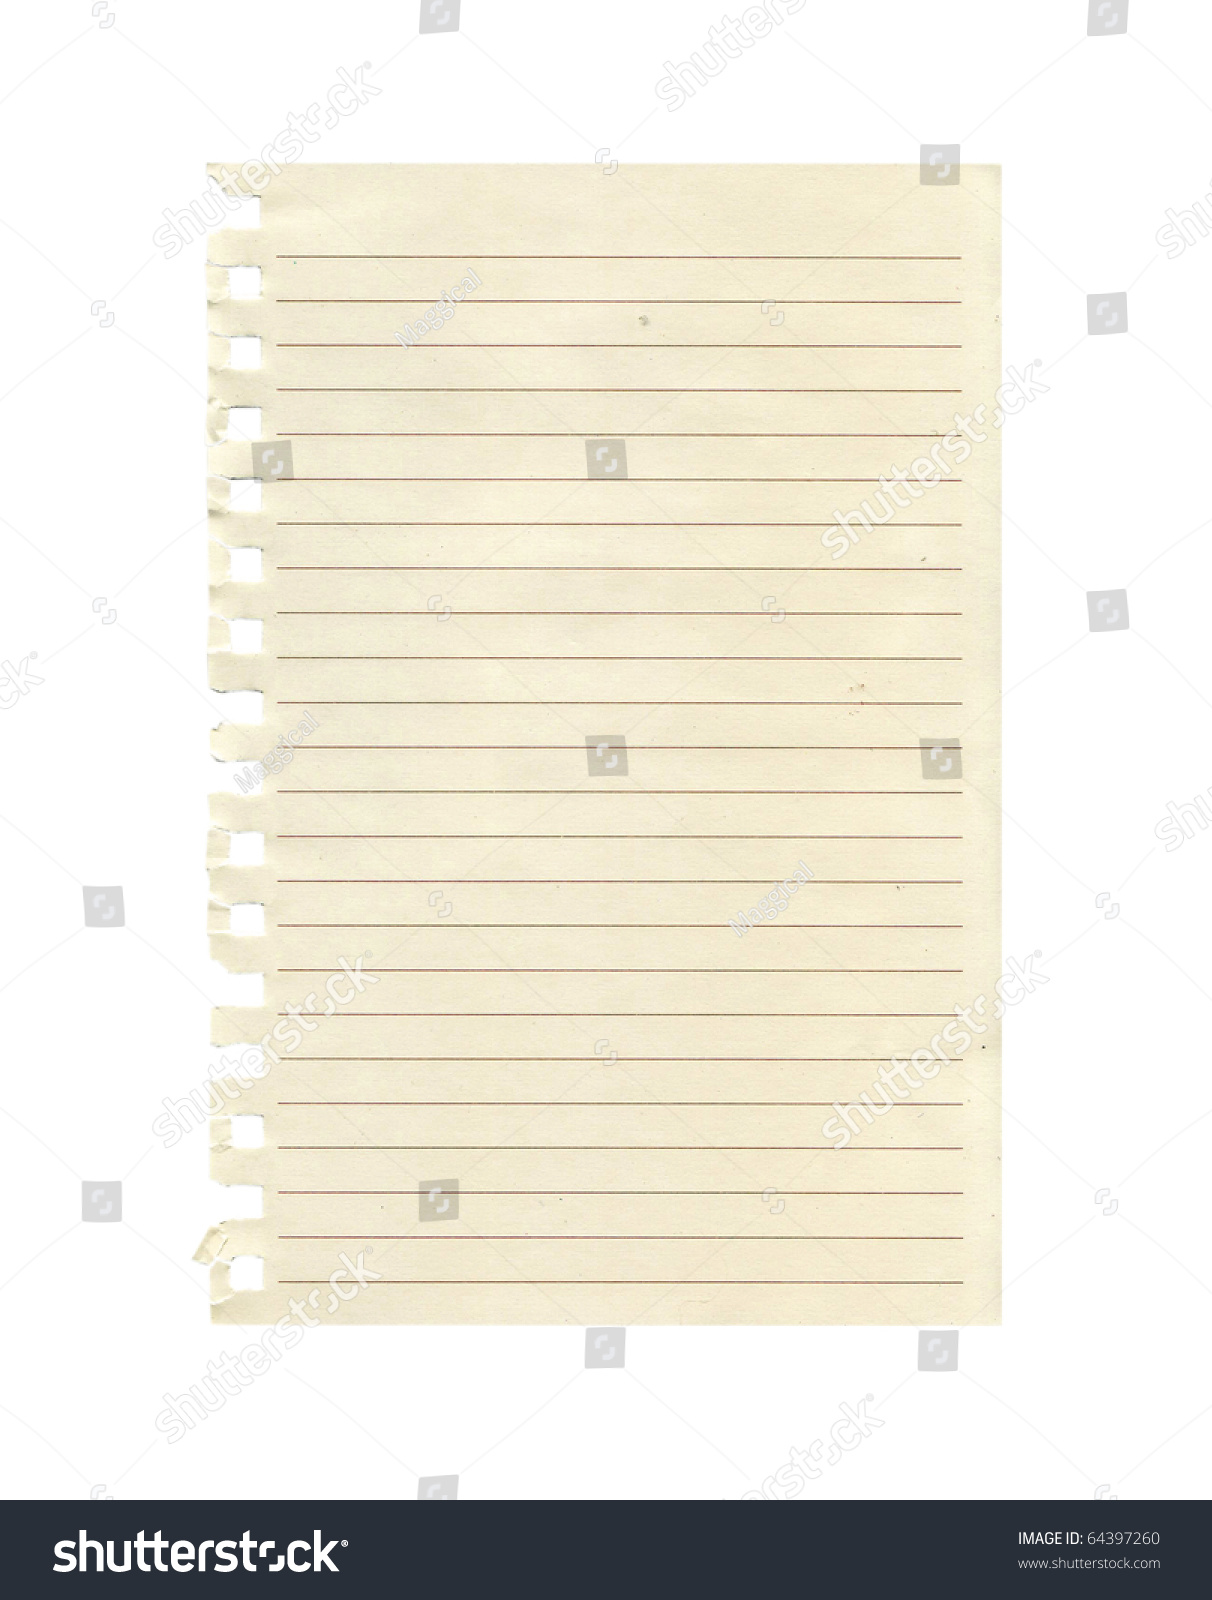 Sheet of lined paper